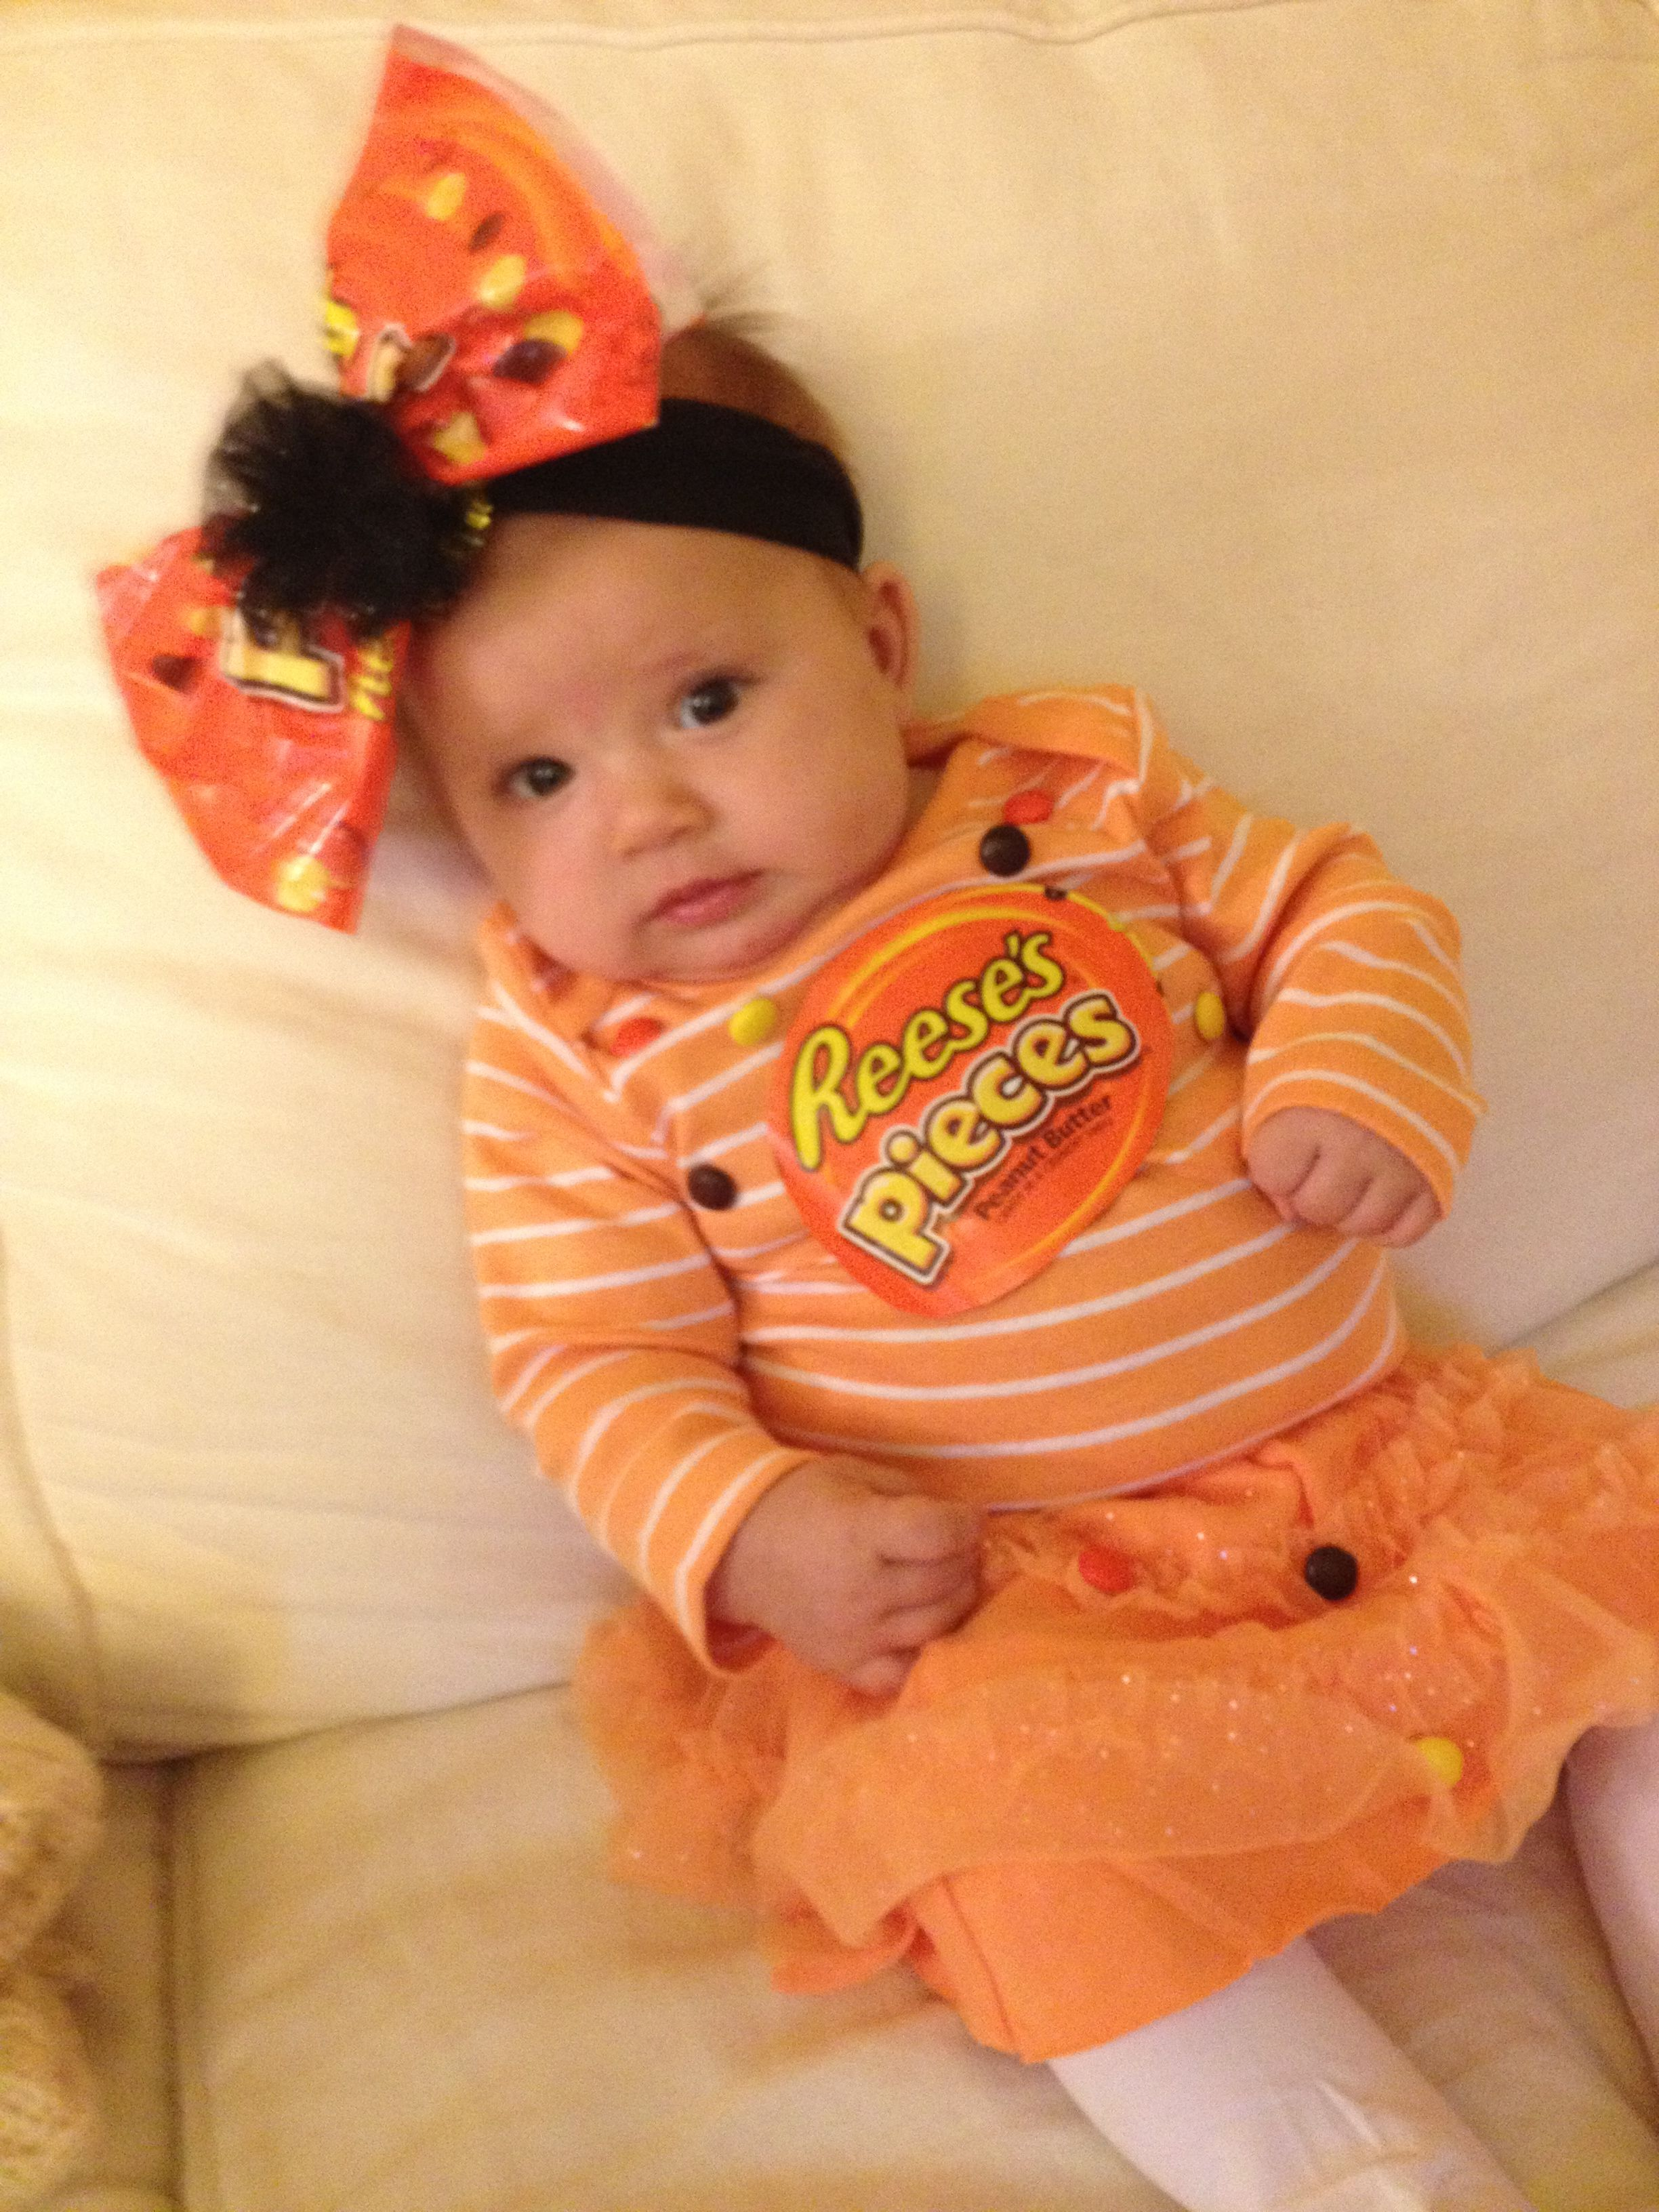 Babys First Halloween Costume Girl.Reese S Pieces First Halloween Costume Made By My Gramma Fall